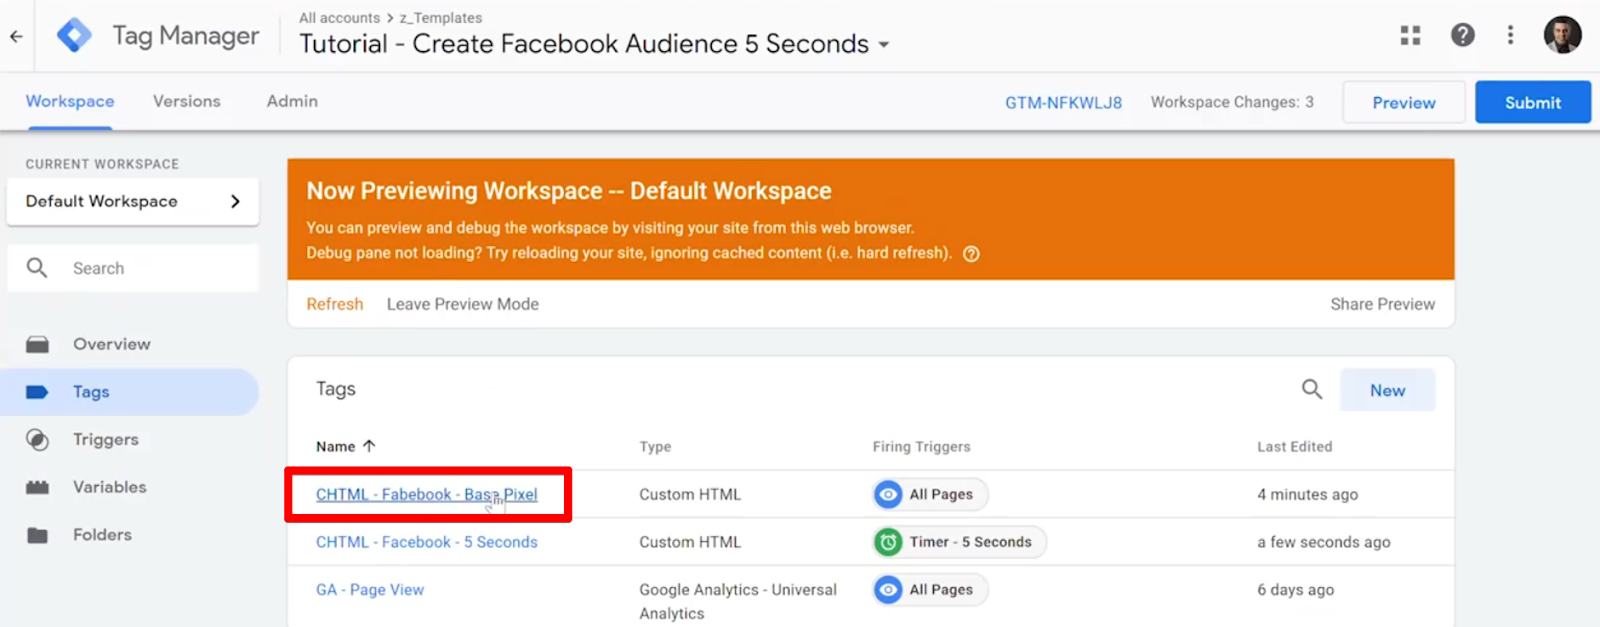 Selecting CHTML - Facebook - Base Pixel Tag from list of Tags in Google Tag Manager